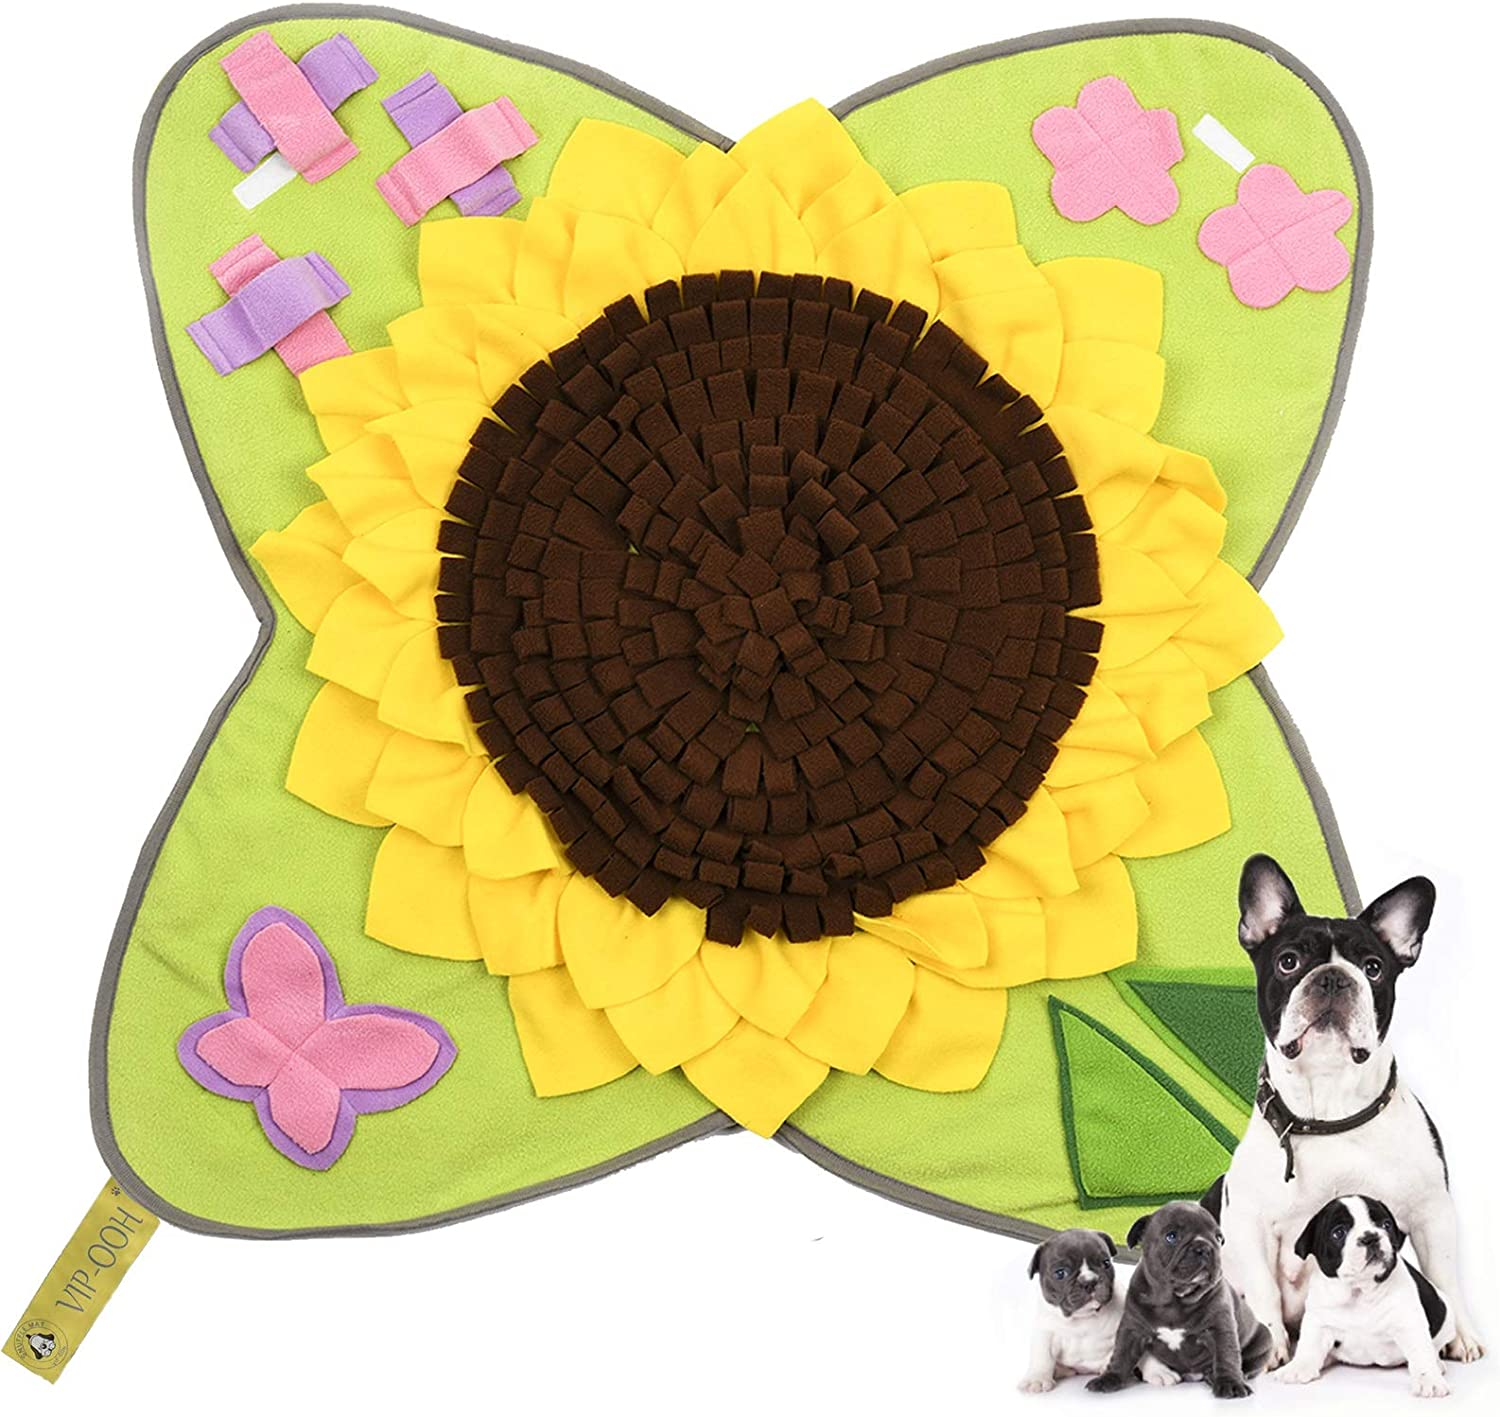 VIP-OOH Snuffle Mat for Dogs, Dog Puzzle Toys, Pet Large Feeding Mat, Nosework Training Mats Interactive Toys for Dogs, Durable Blanket Encourages Natural Foraging Skills and Stress Release